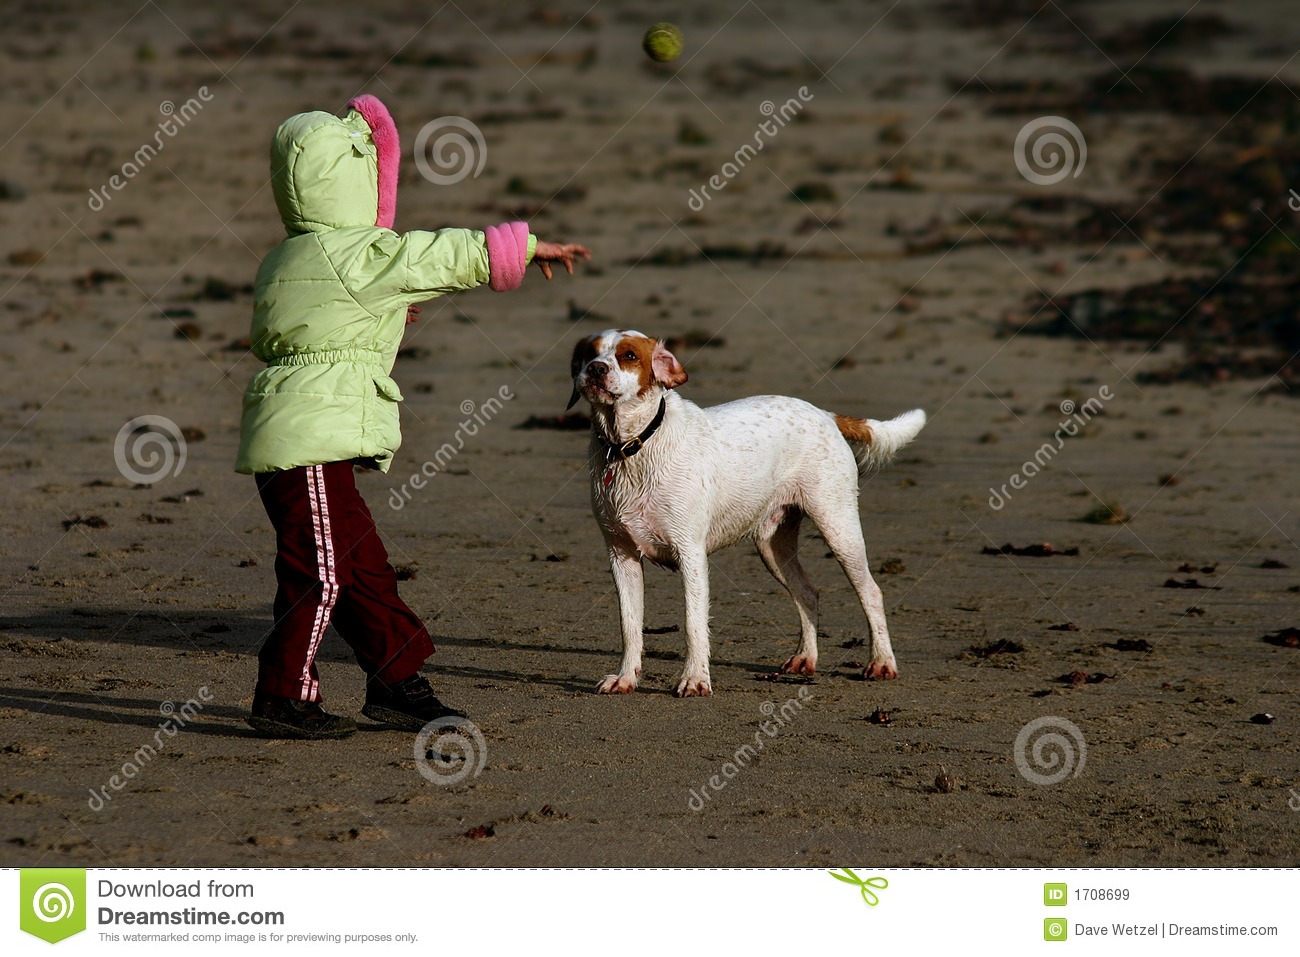 Child playing fetch with his dog at the beach